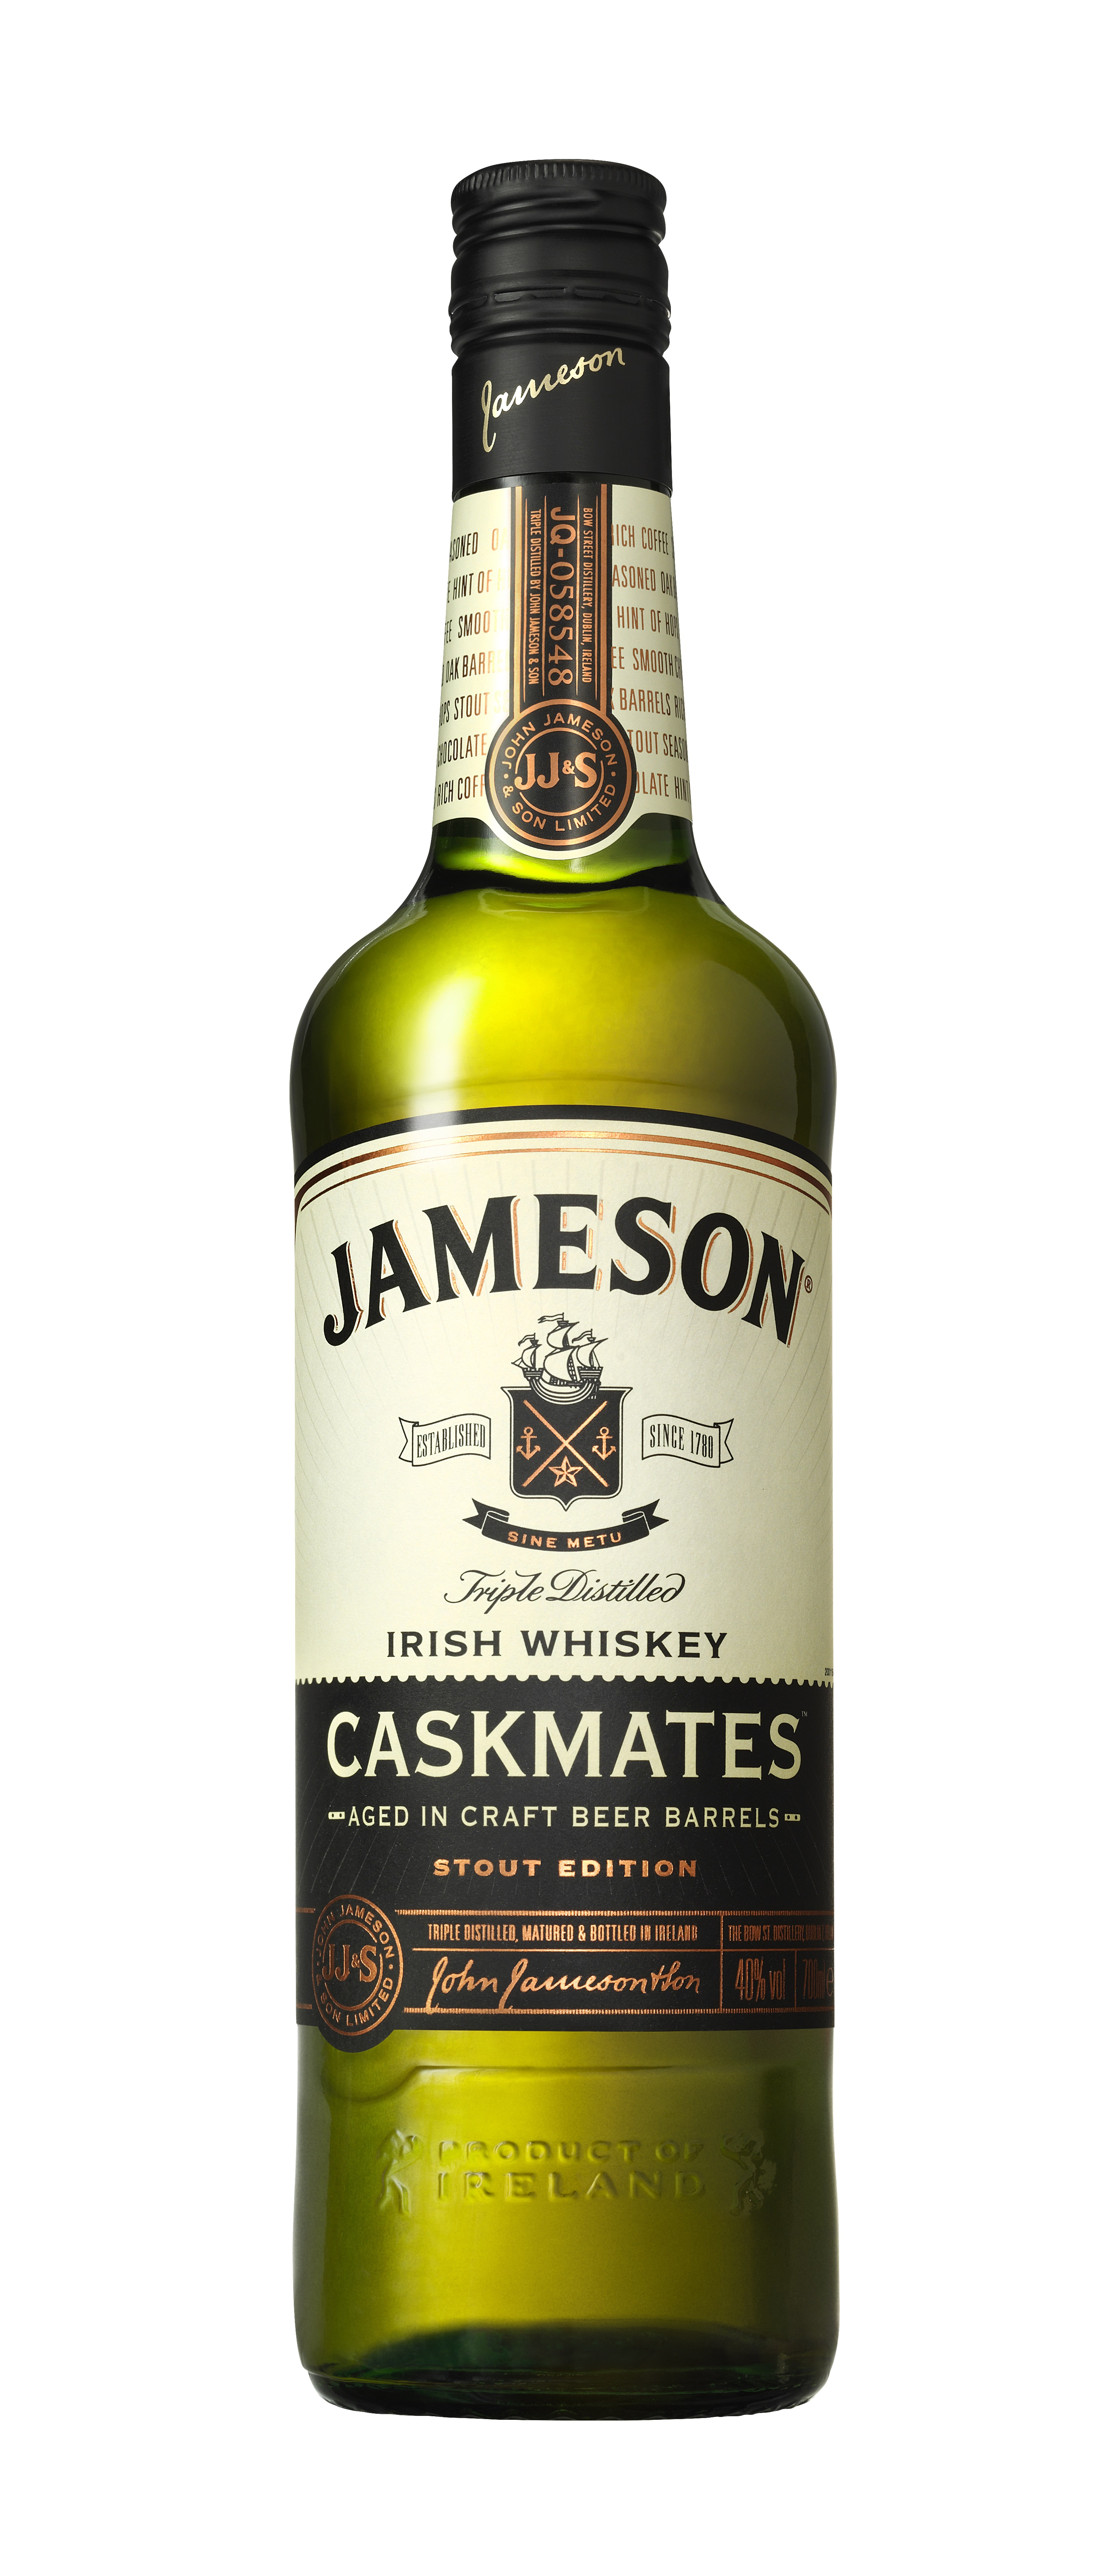 Communication on this topic: How to Drink Jameson, how-to-drink-jameson/